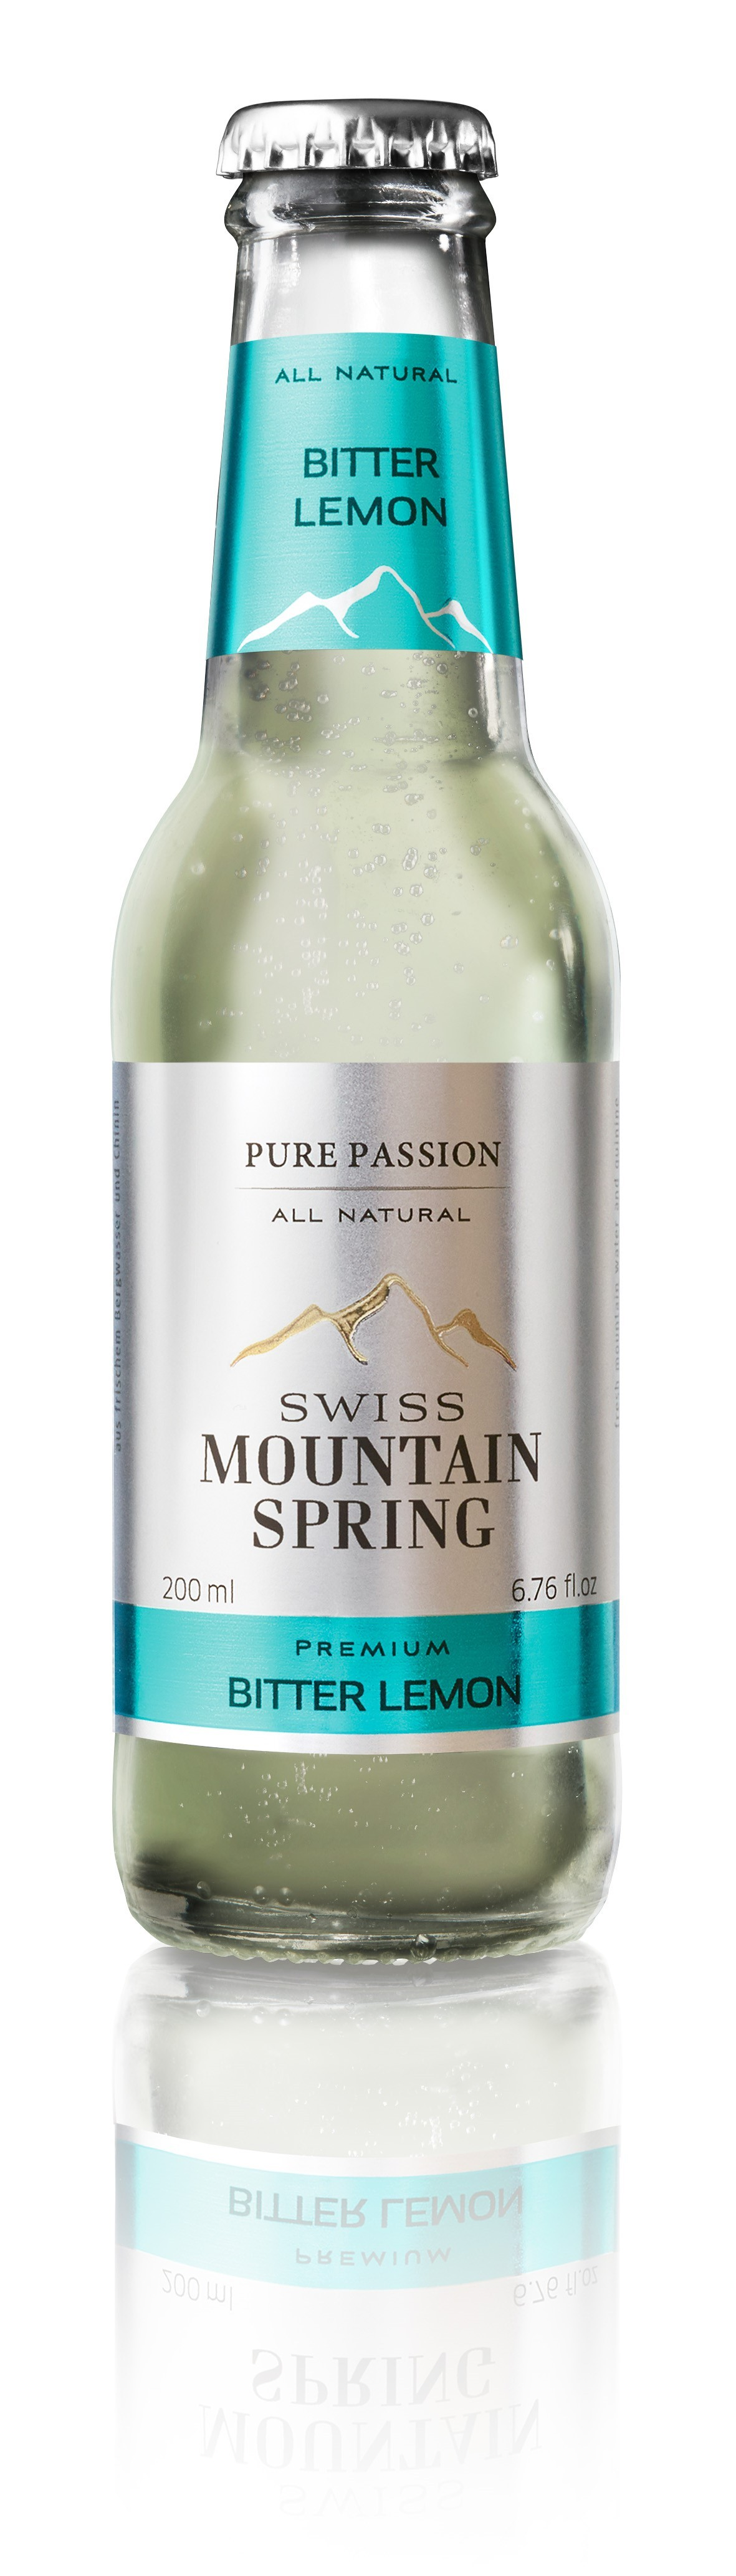 Swiss Mountain Spring - Bitter Lemon (6 x 20 CL)